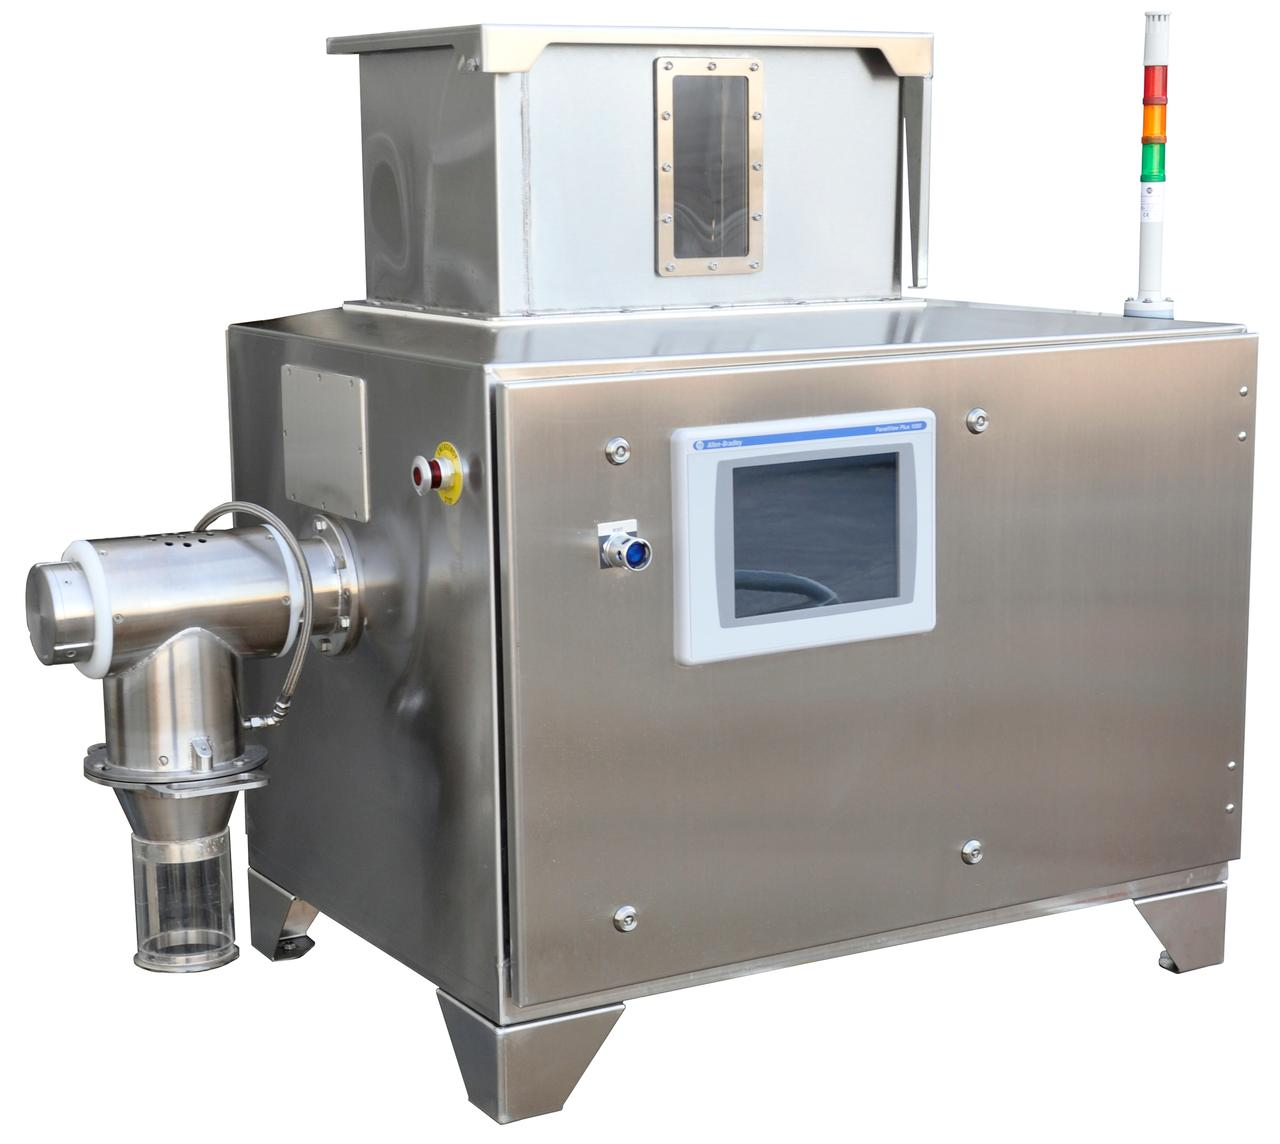 Equipment, Mixer, Industrial, Machinery, Factory, Metal, Pipes